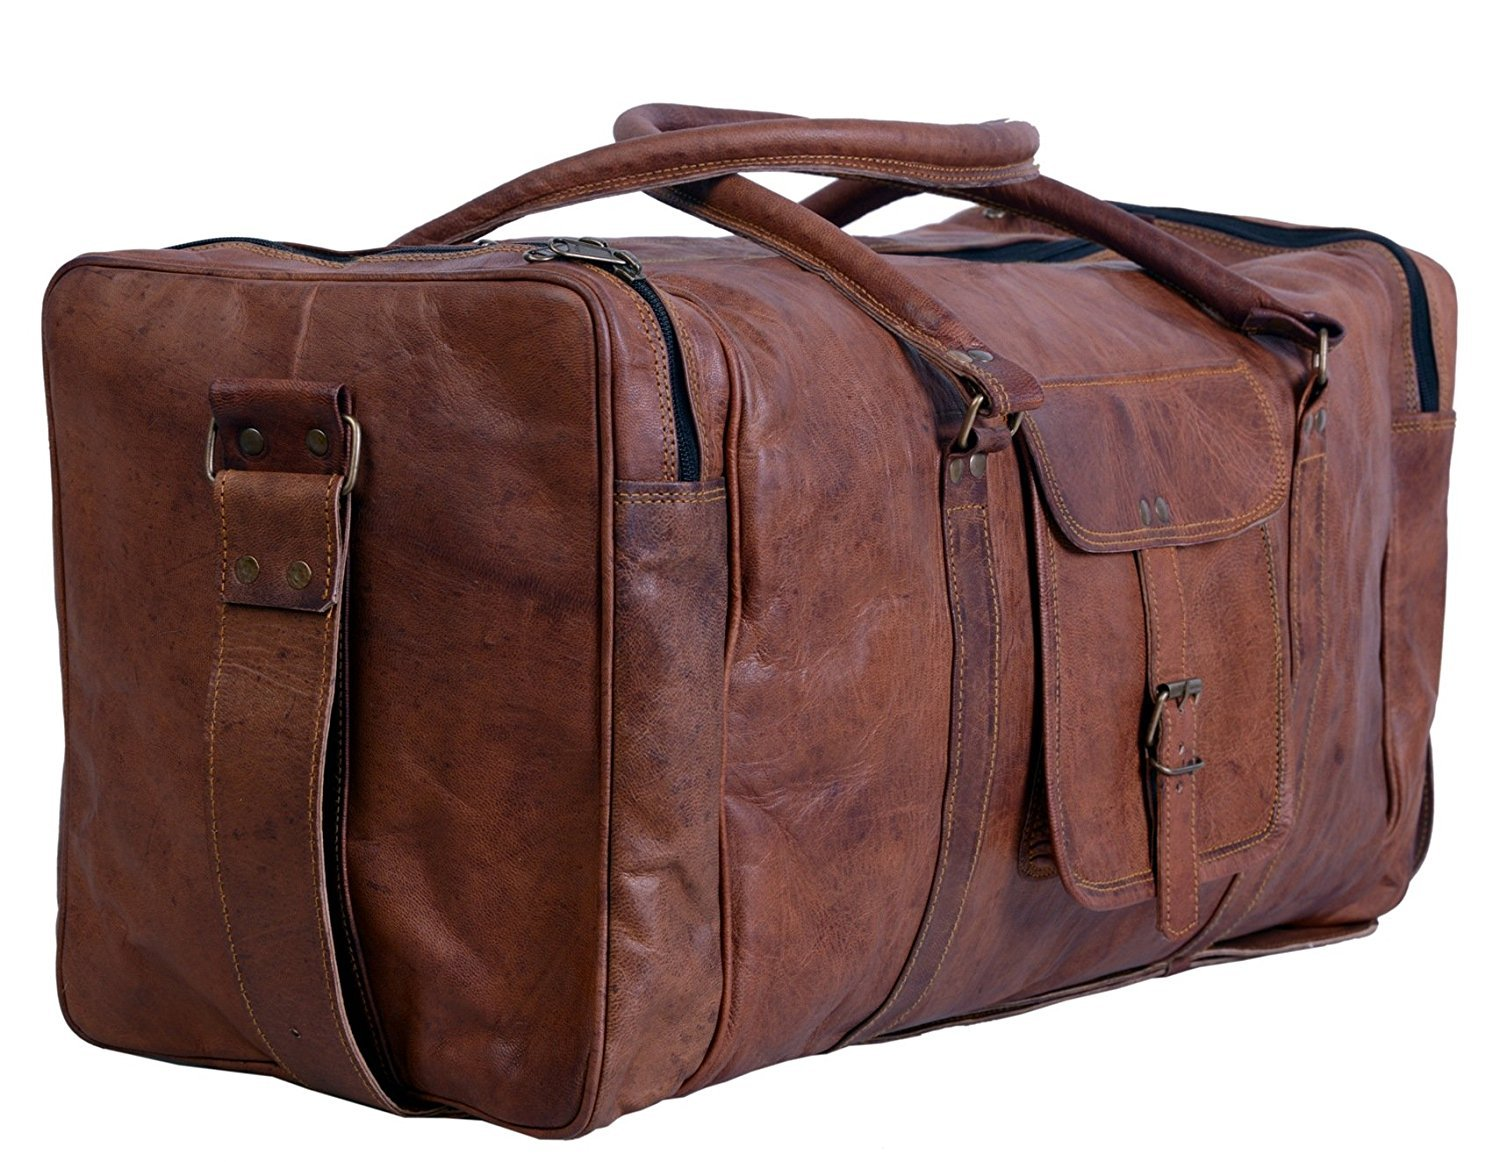 Men/'s Leather Vintage Duffle Luggage Weekend Gym Carry on Overnight Travel Bag